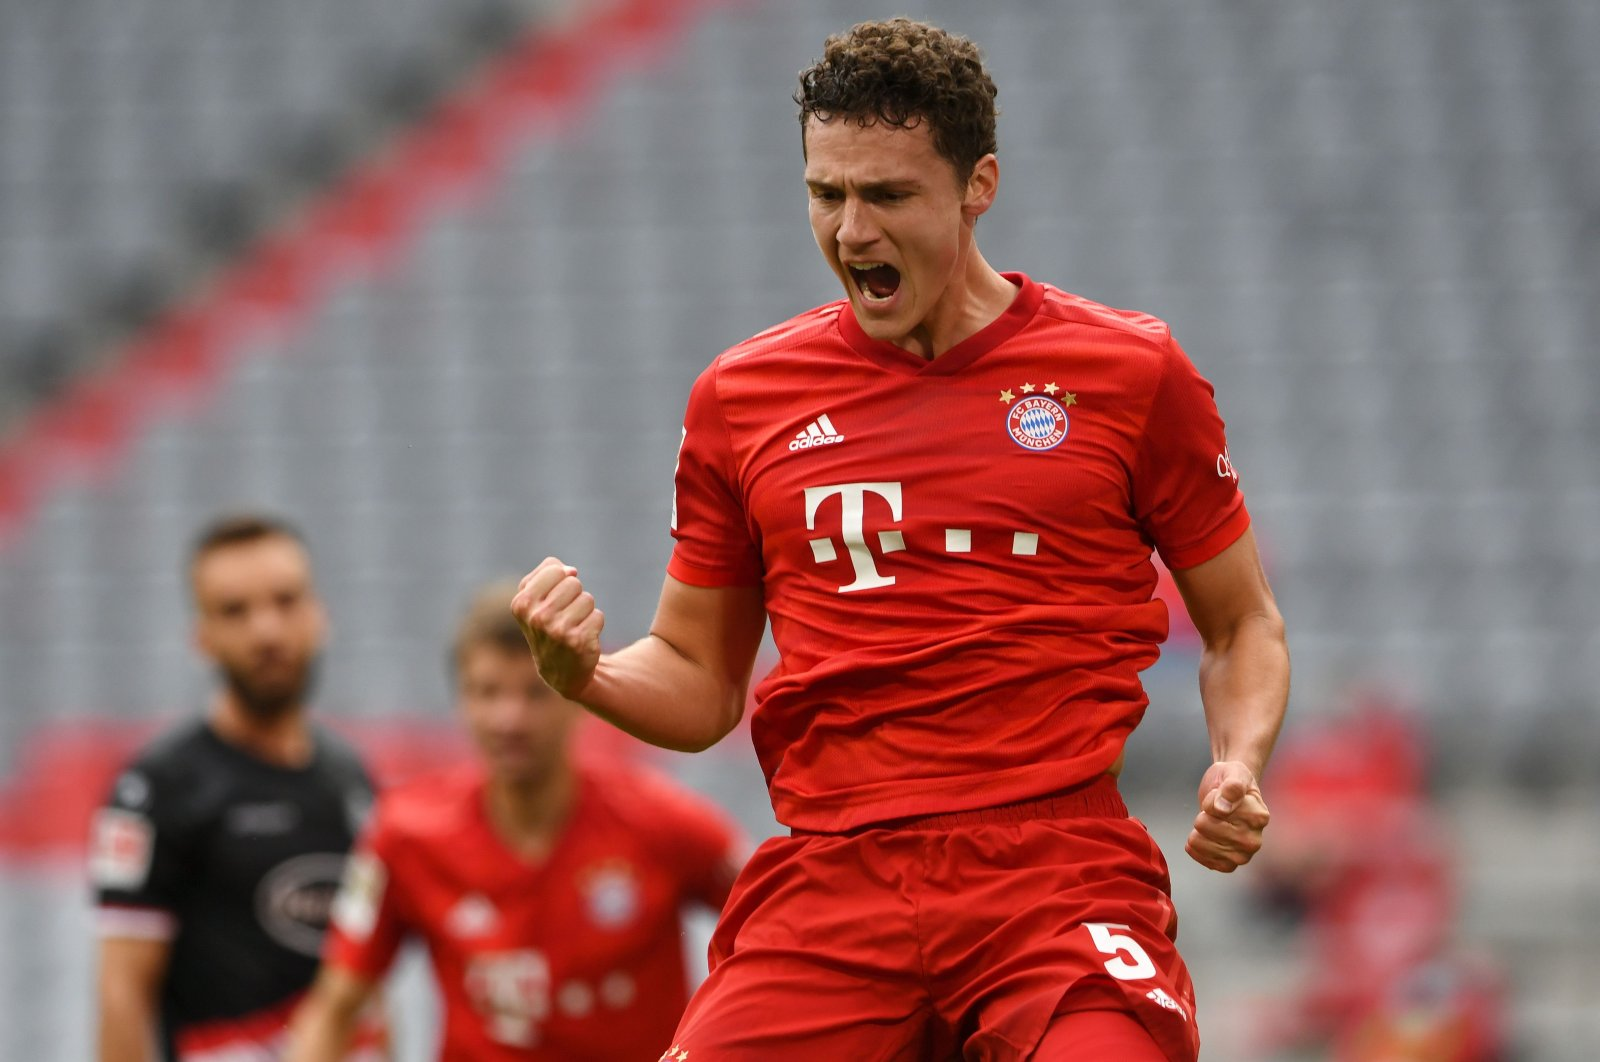 Bayern Munich's Benjamin Pavard celebrates a goal during a Bundesliga match against Fortuna Duesseldorf in Munich, Germany, May 30, 2020. (AFP Photo)